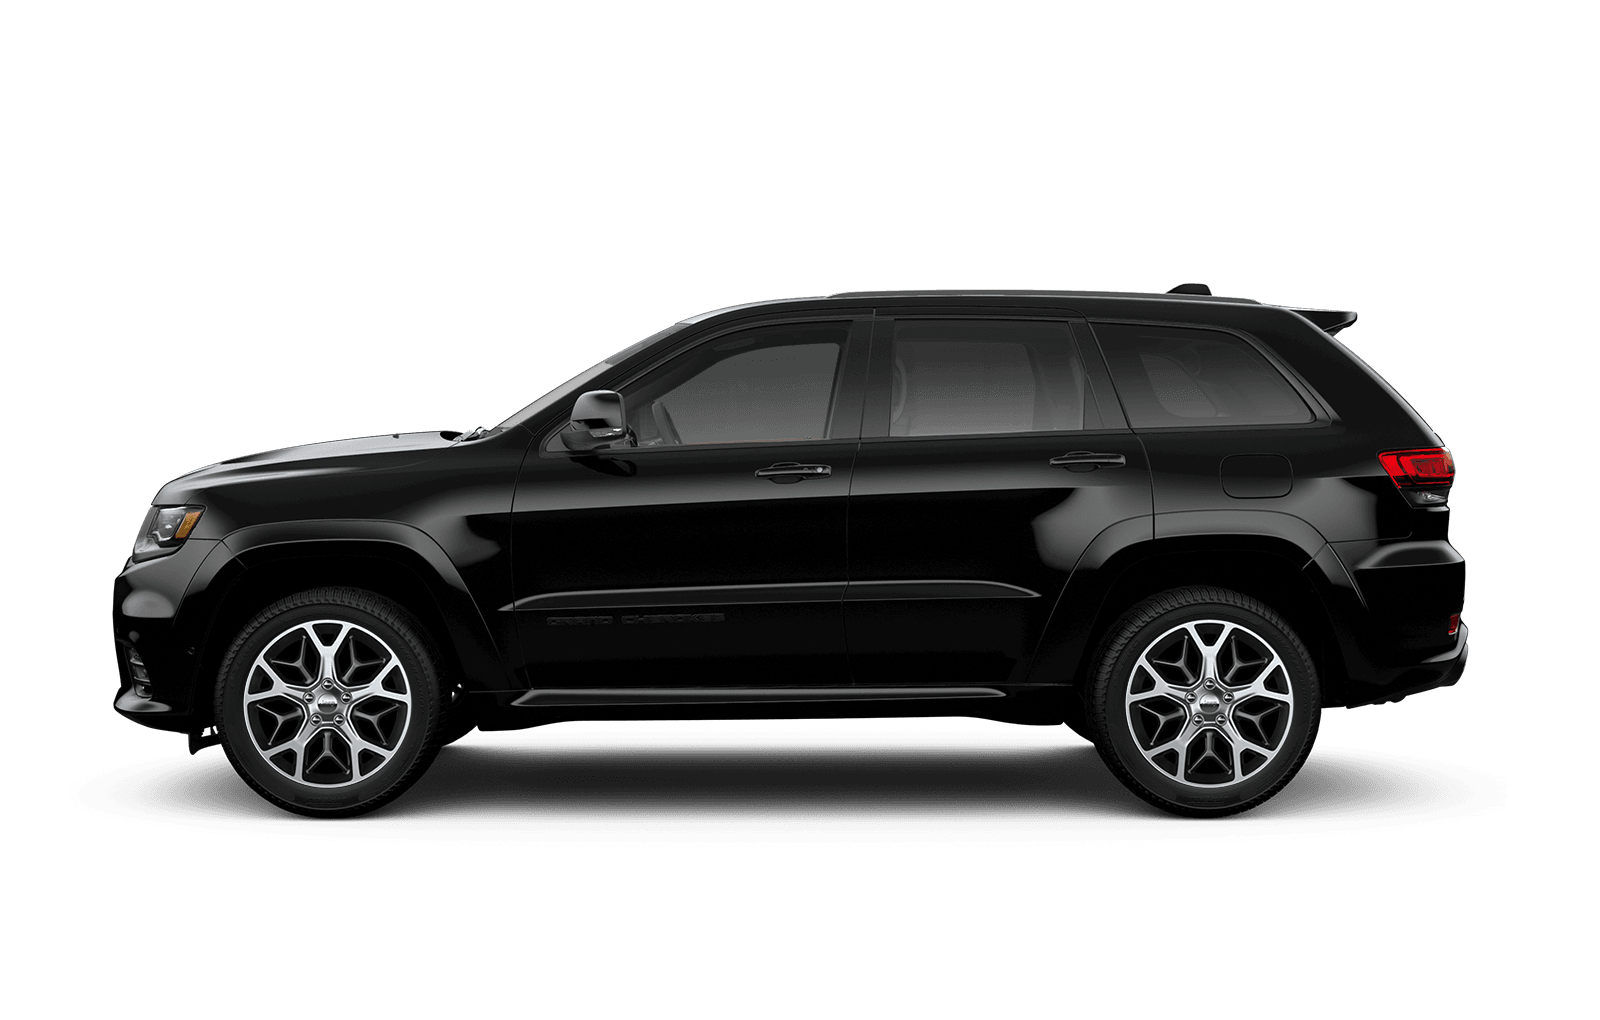 2020 Jeep Grand Cherokee - Most Awarded SUV Ever   Jeep Canada